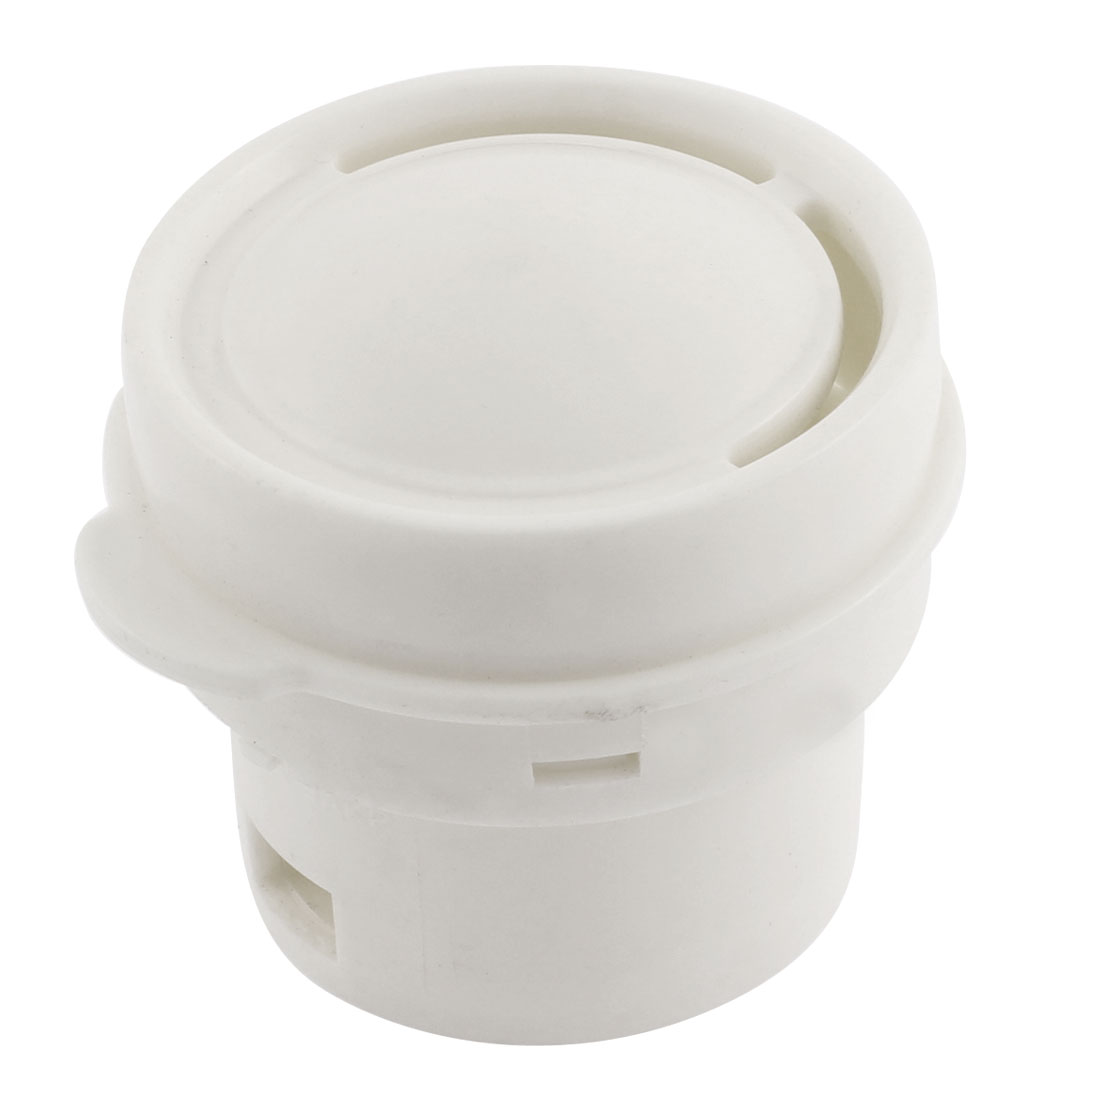 Plastic Steam Release Valve Rice Cooker Spare Parts 50mm Dia White